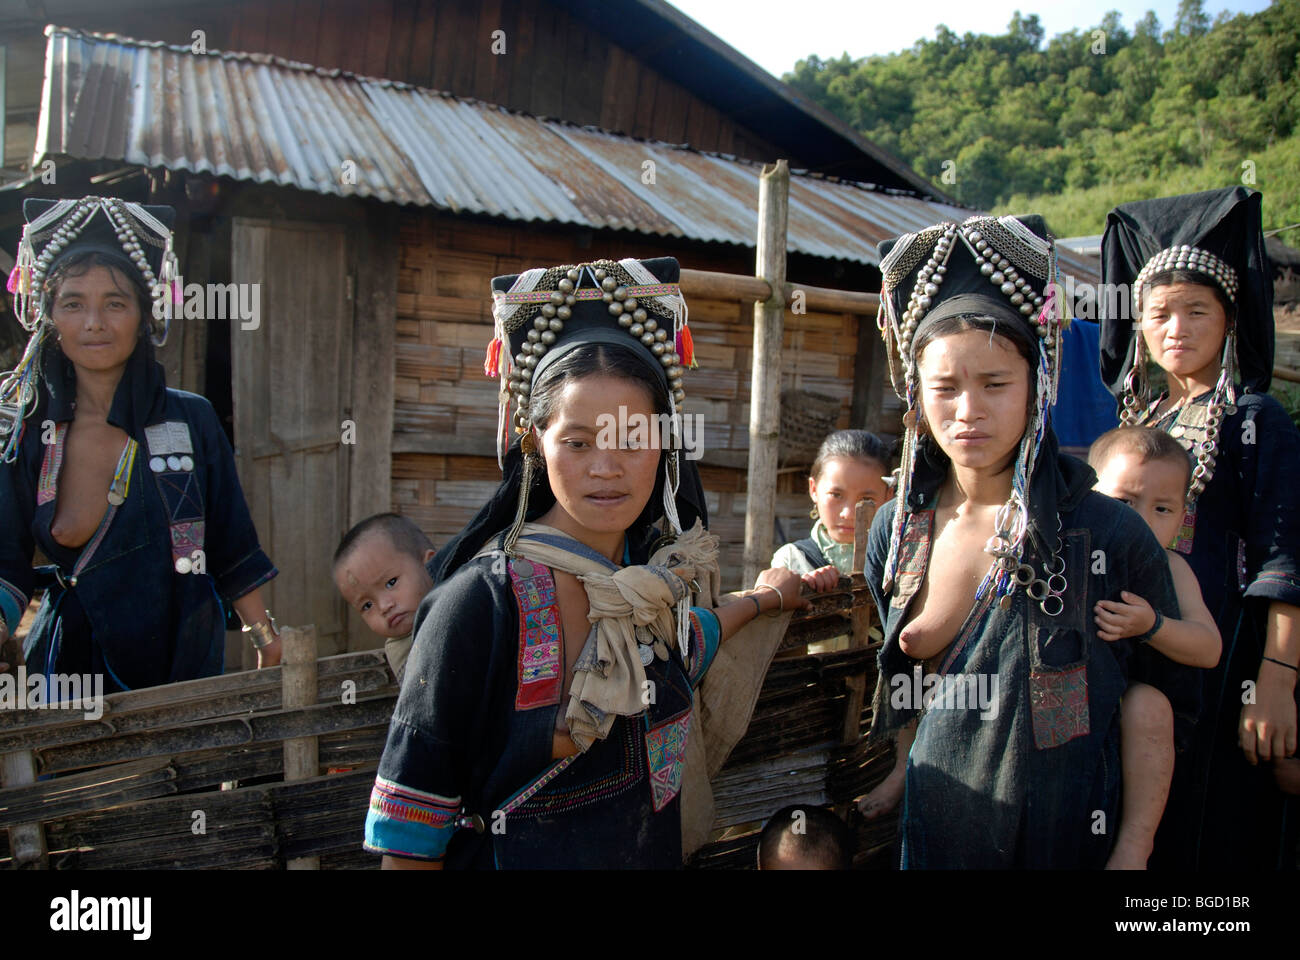 Poverty, Akha Nuqui women, with infants on their backs, dressed in indigo coloured traditional clothing and hats - Stock Image